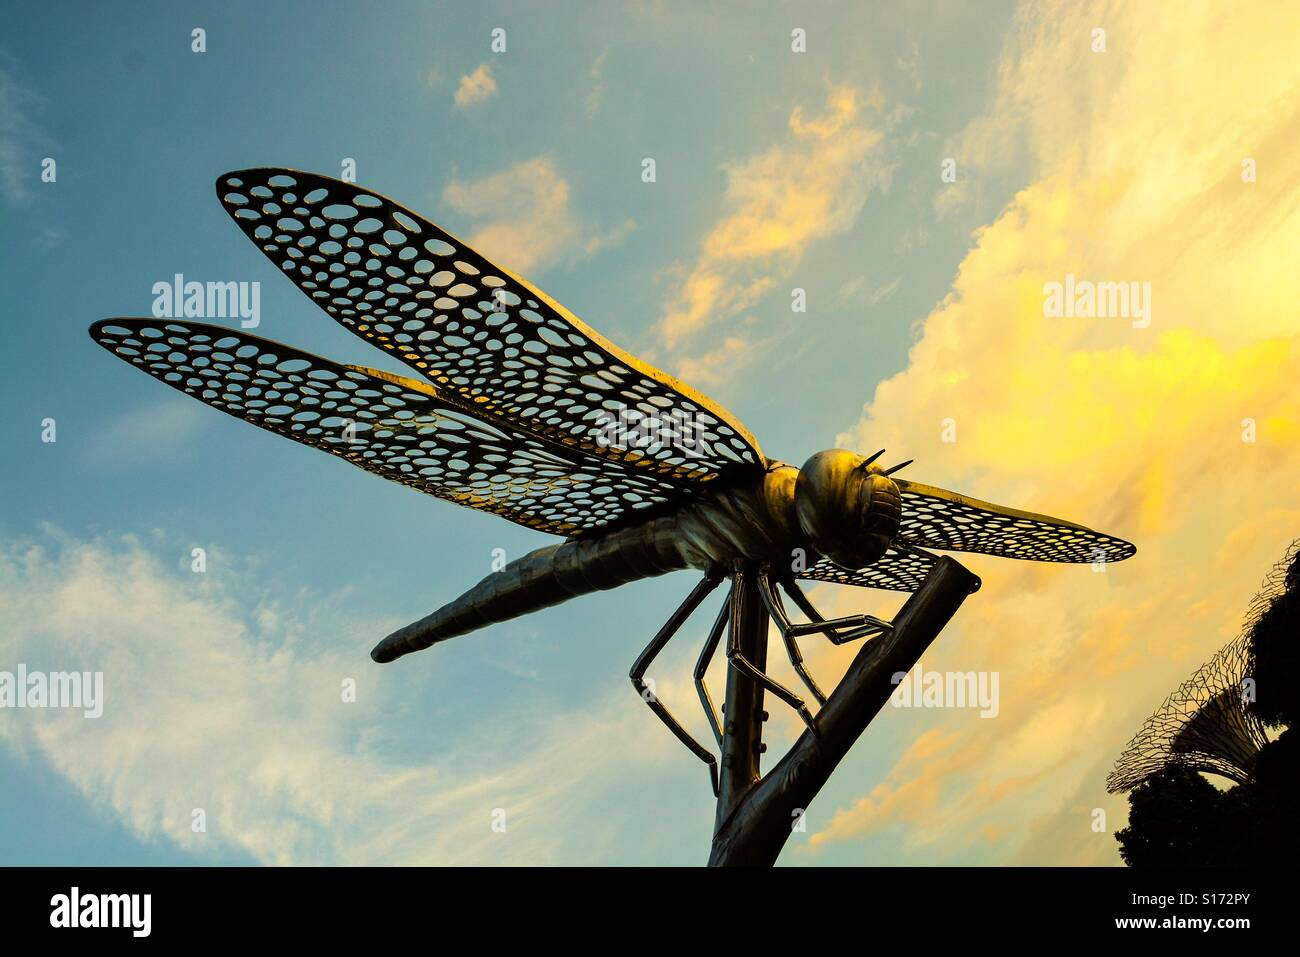 Dragonfly Sculpture Stock Photos & Dragonfly Sculpture Stock Images ...